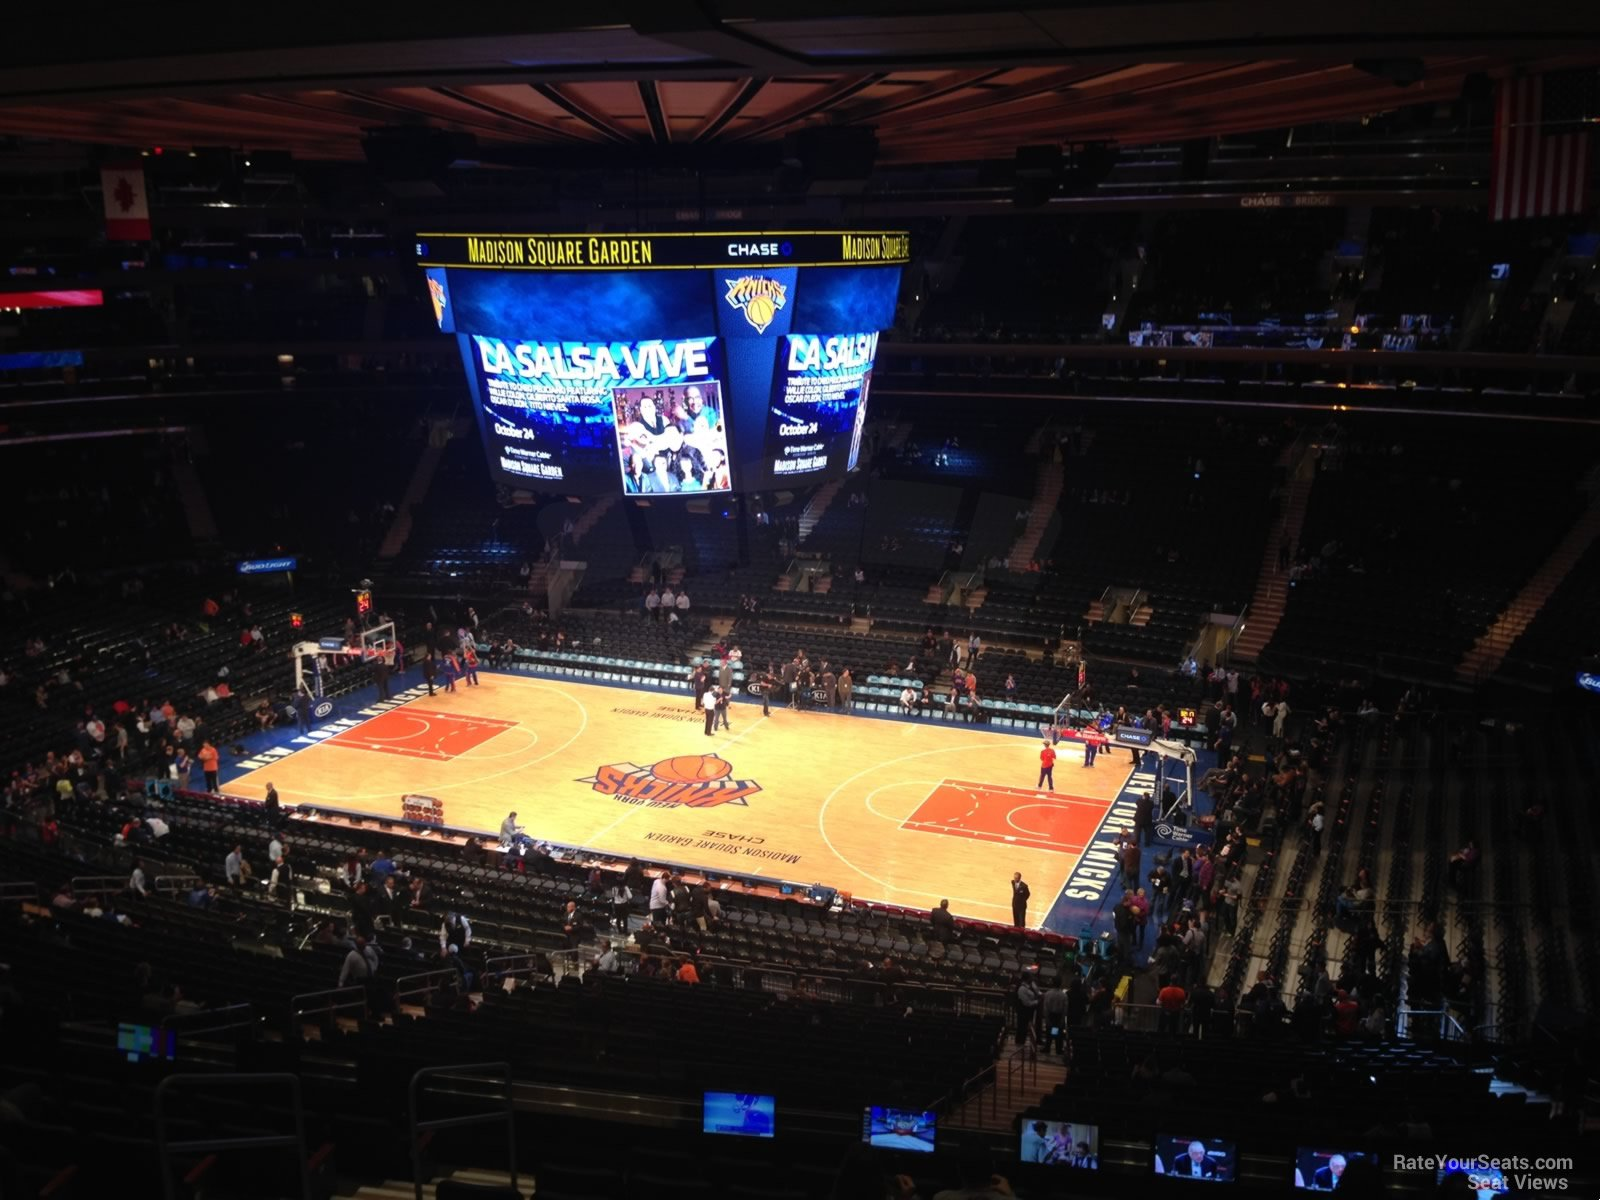 Madison square garden section 213 new york knicks Madison square garden basketball